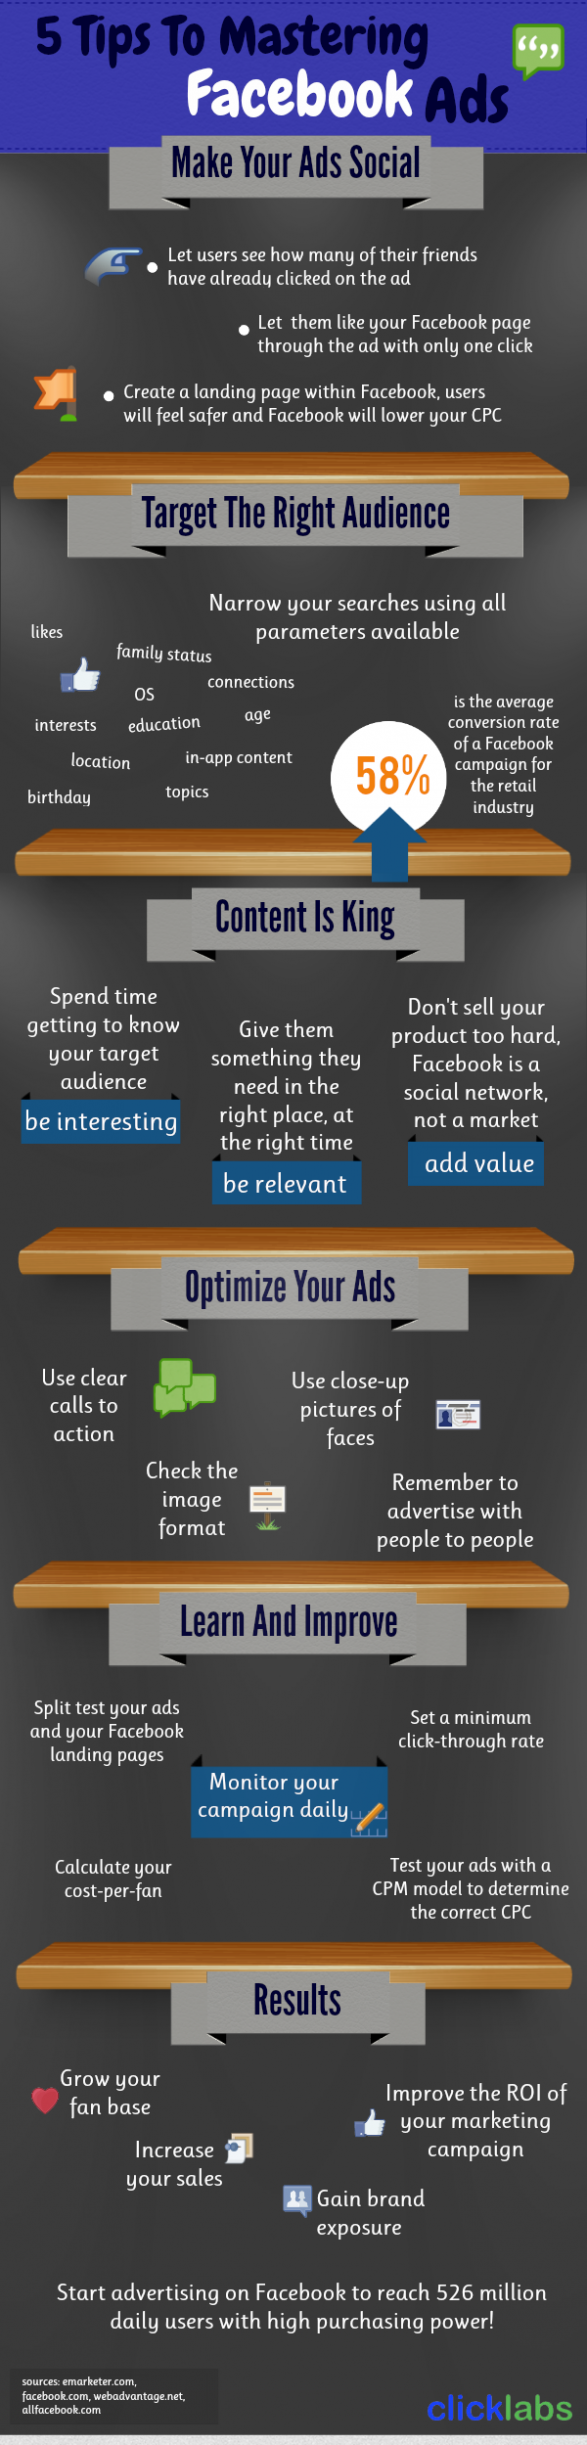 5 tips to mastering Facebook ads